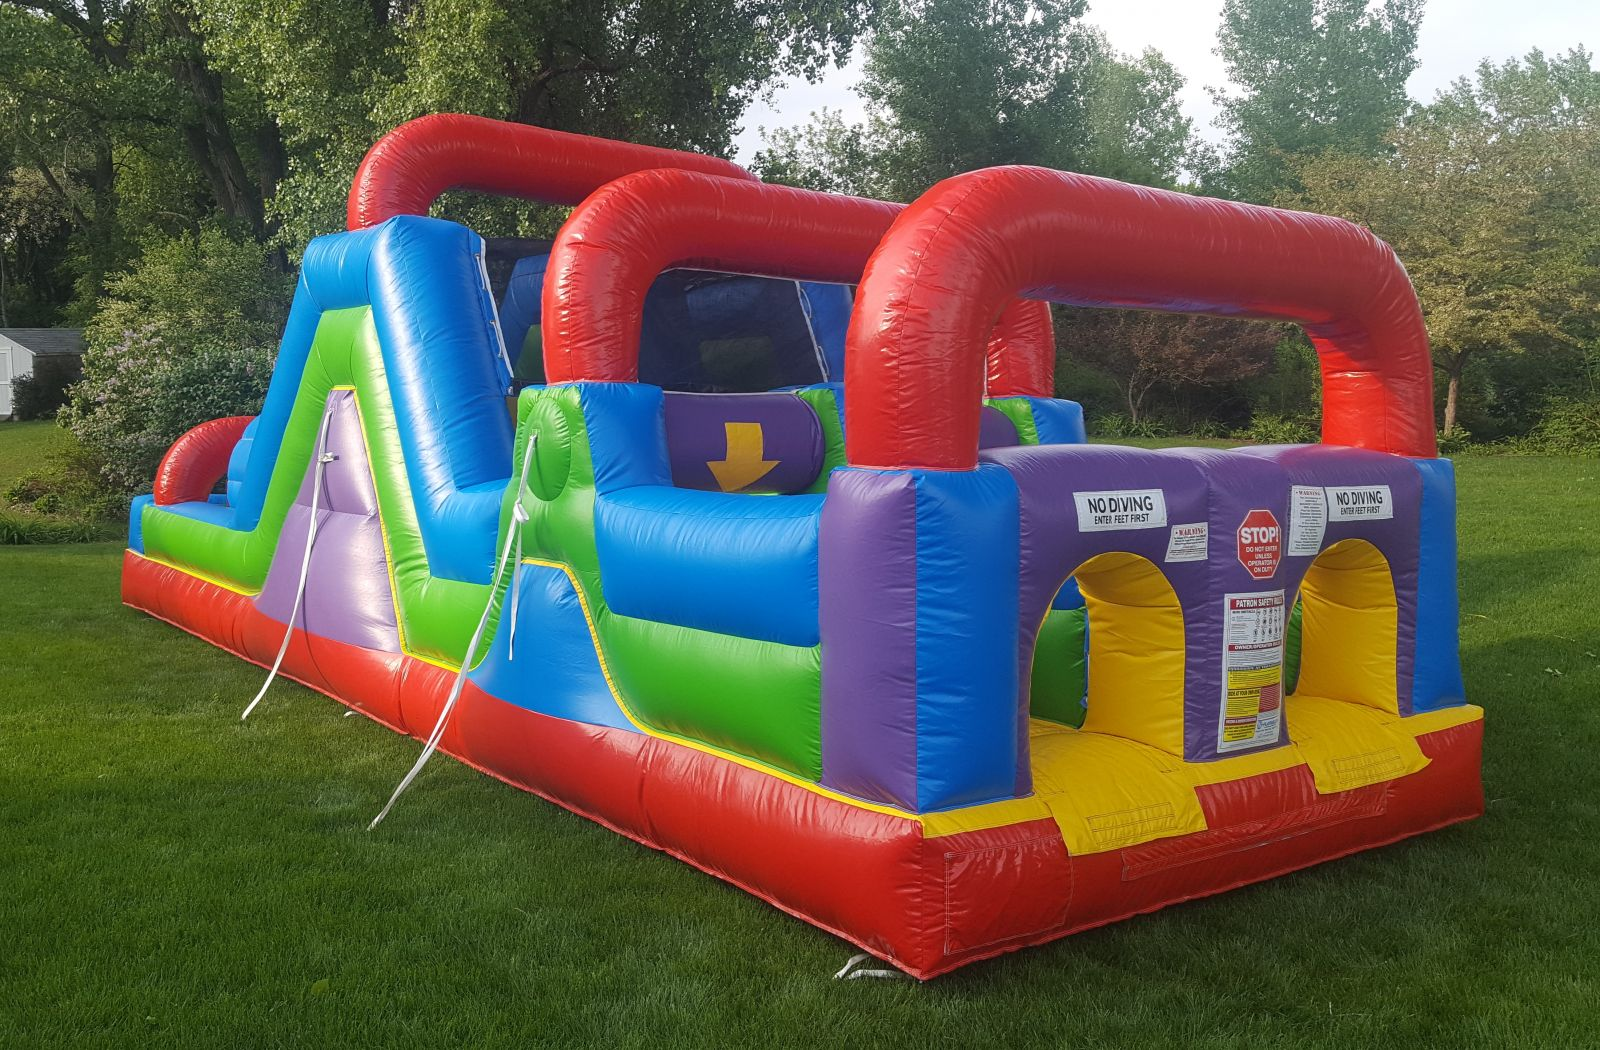 Inflatable Obstacle Course Rental in yard